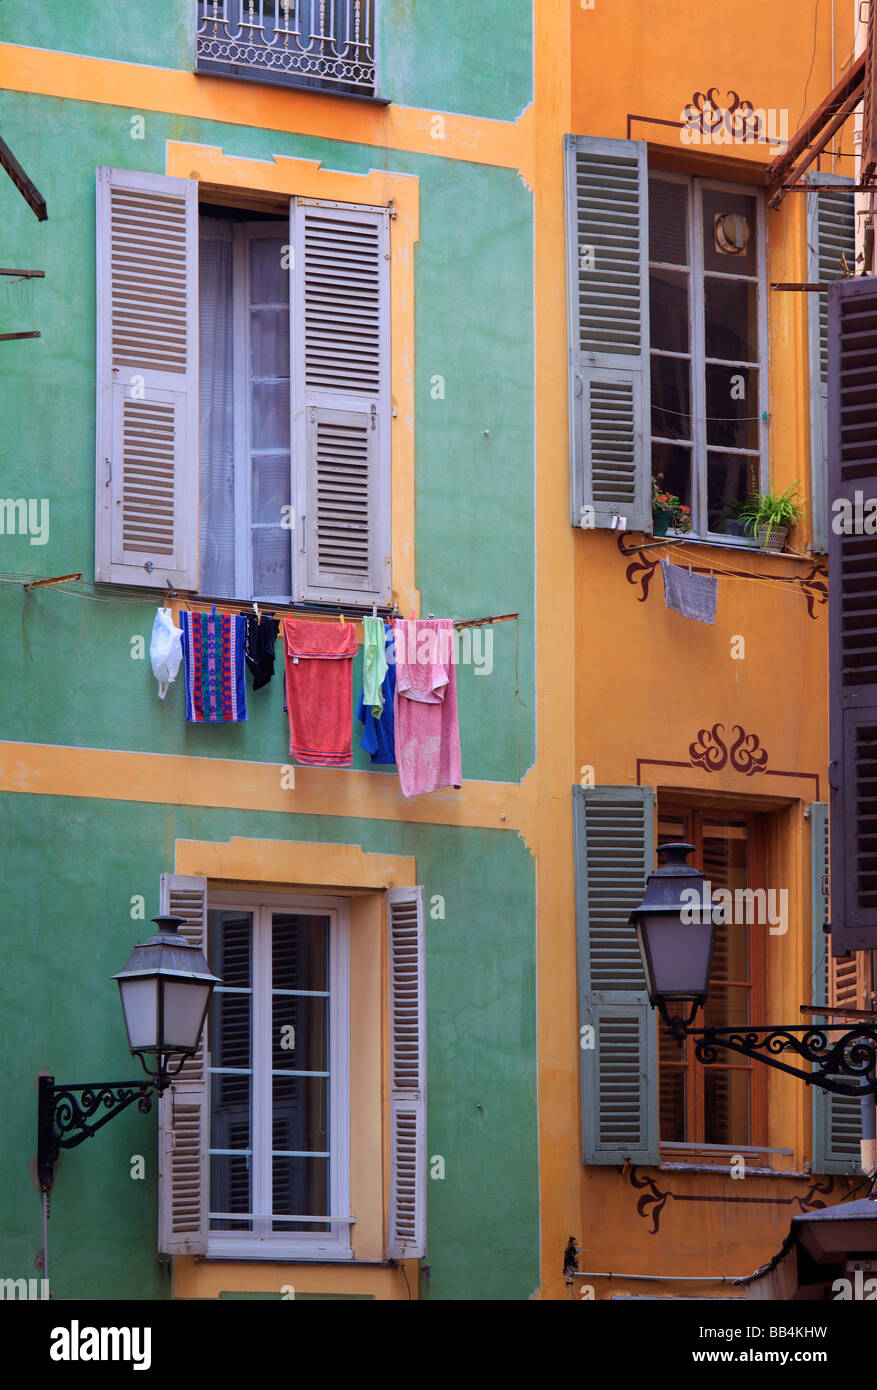 Windows typiquement français dans la 'vieille ville' partie de Nice, France Photo Stock